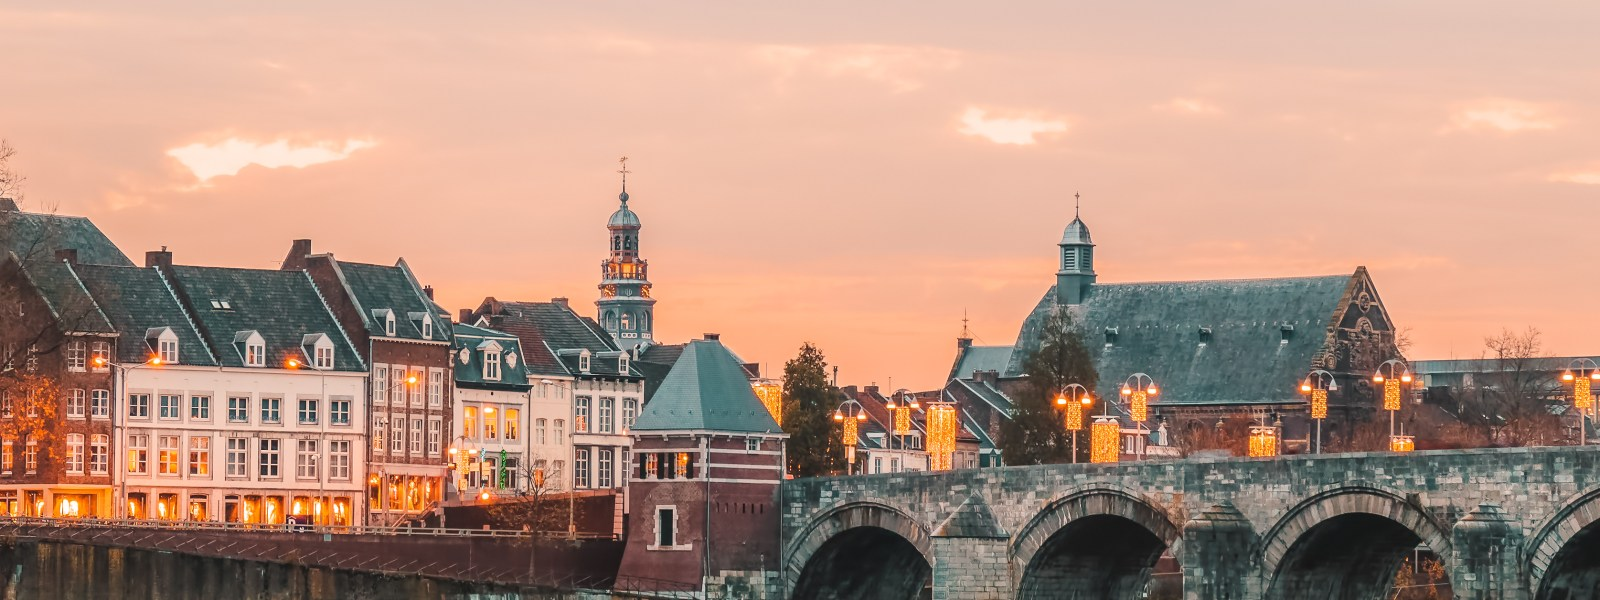 10 reasons to visit Maastricht